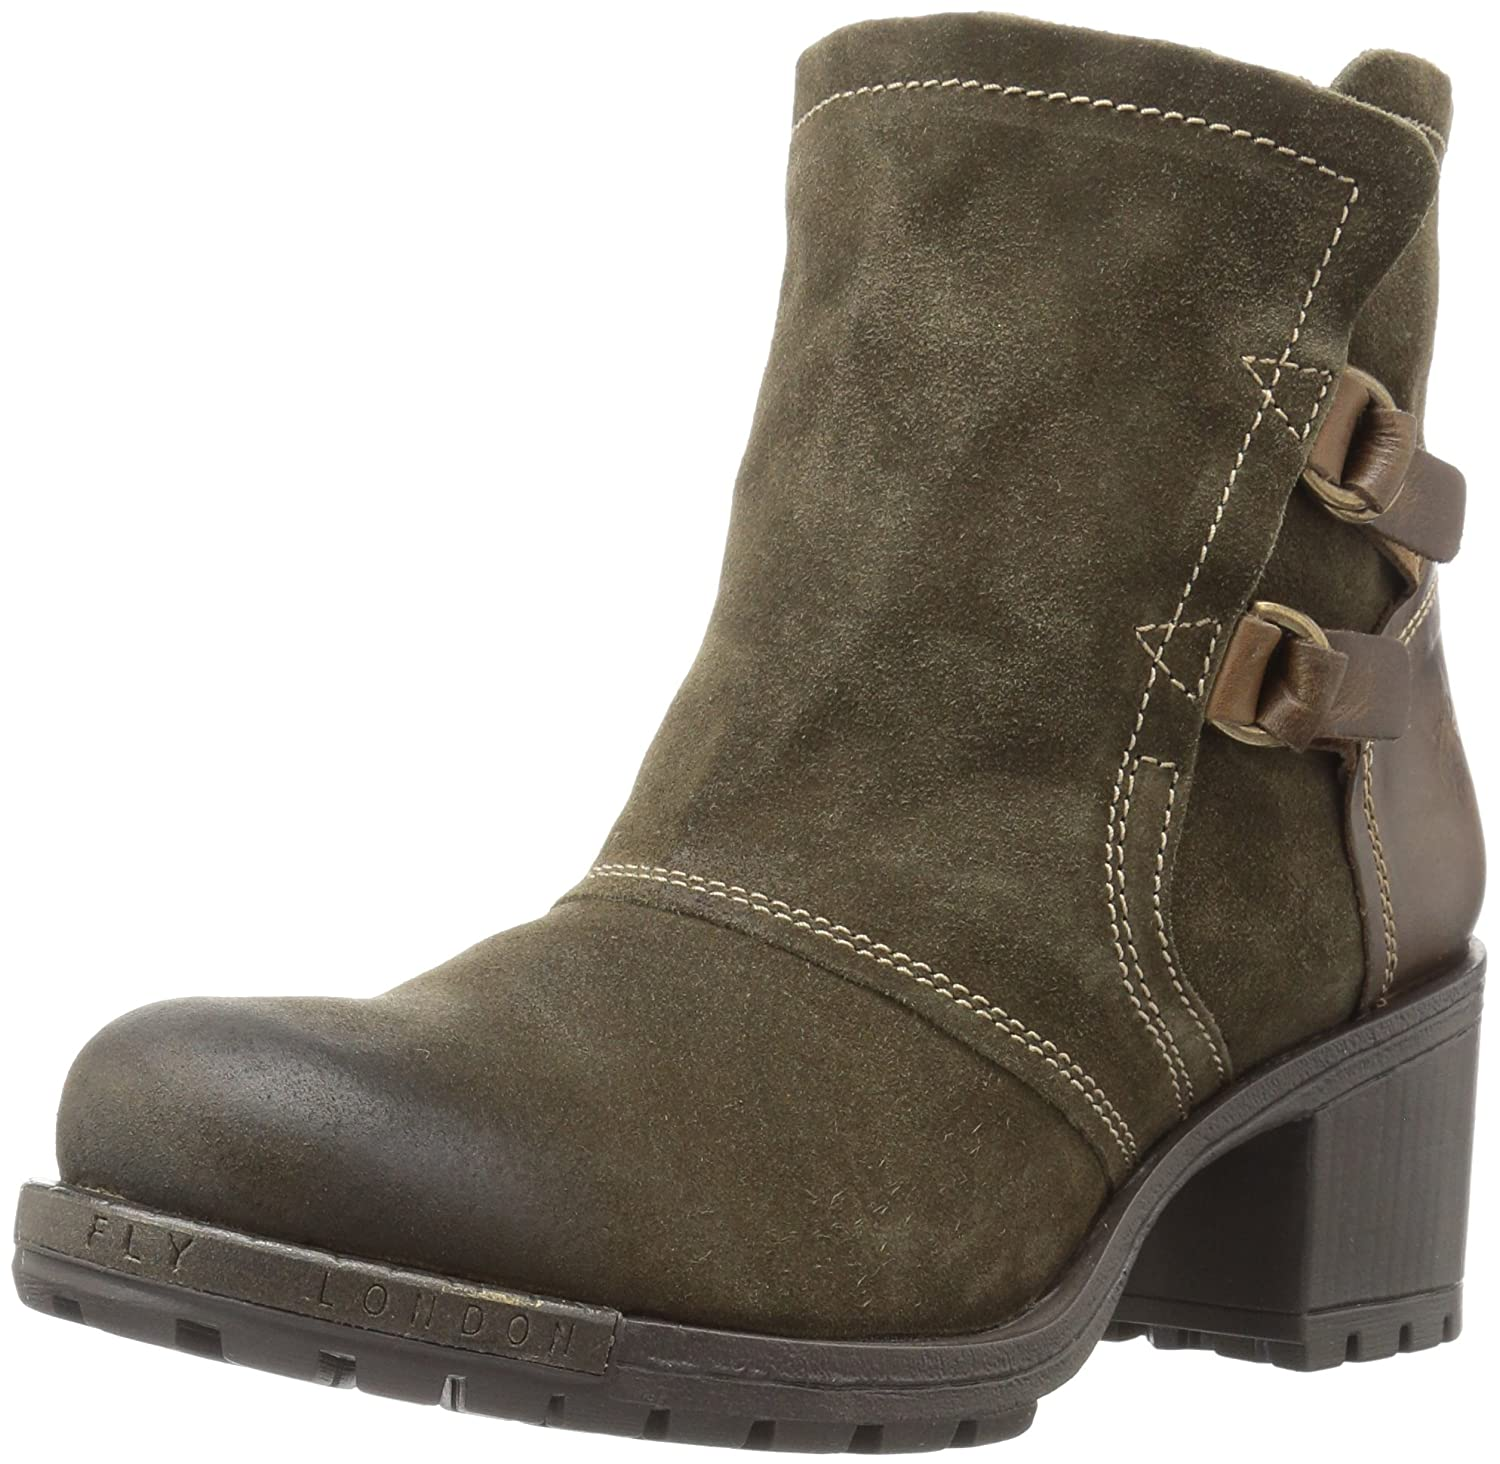 FLY London Women's Lory048fly Fashion Boot B06X9FP2ZG 37 M EU (6.5-7 US)|Sludge/Olive Oil Suede/Rug